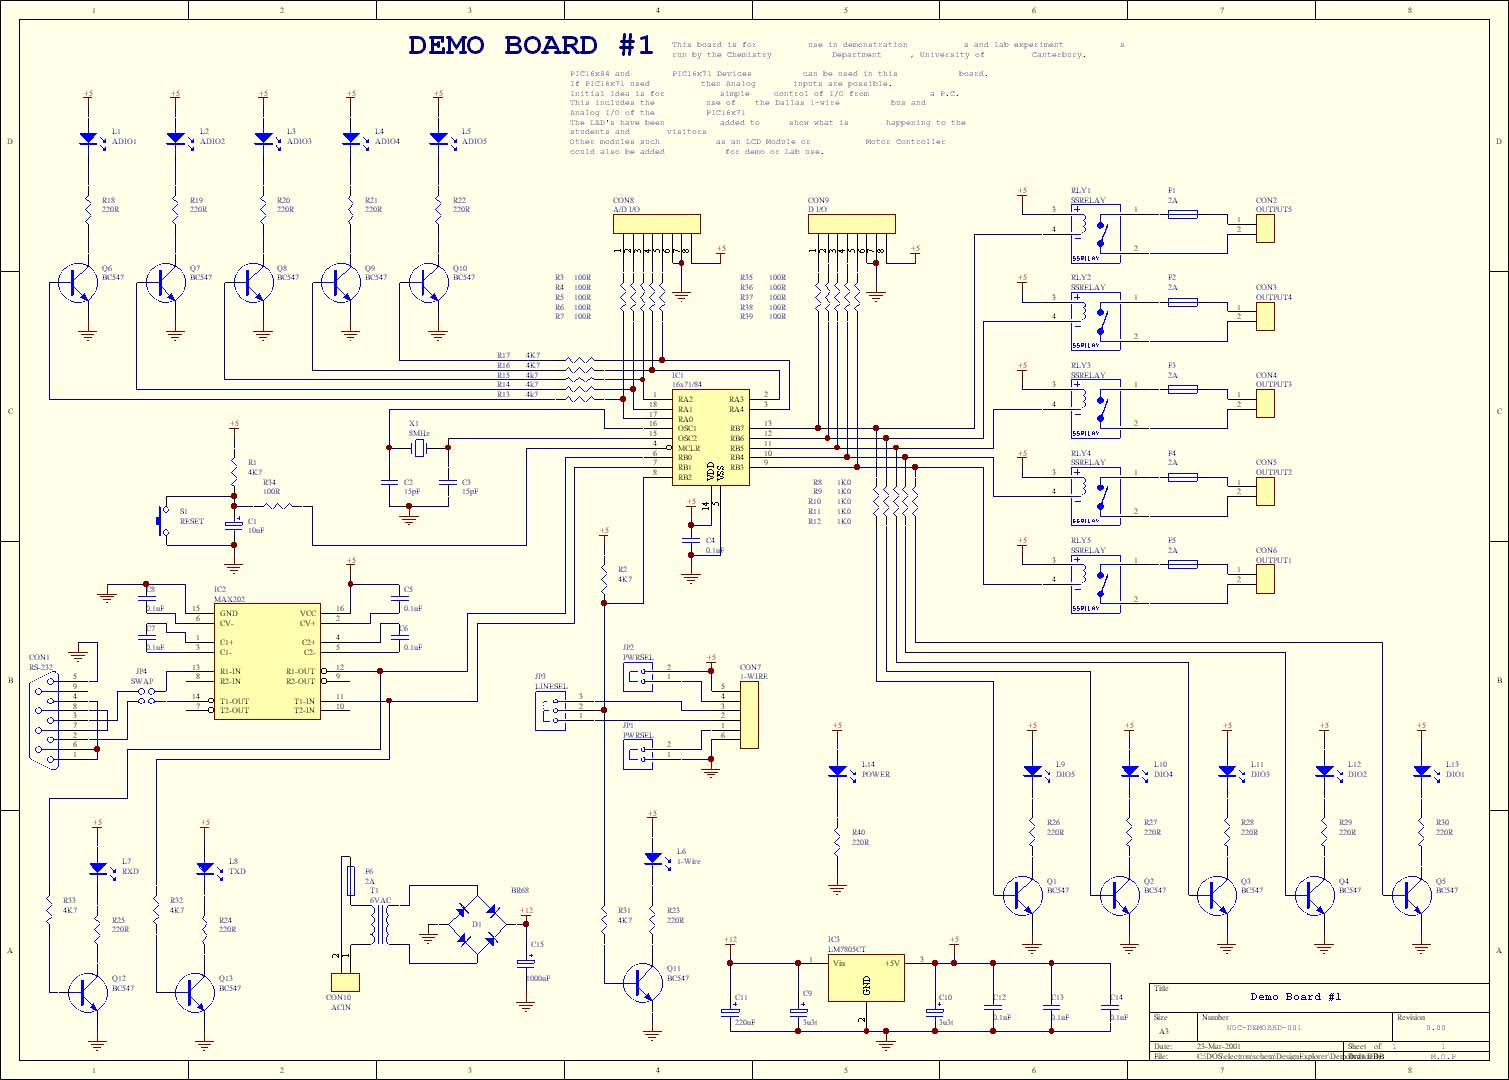 Microprocessor Circuits Electronics Tutorial And Schematics Circuit Diagram Gate On 18 Digital Basic Pic Demo Board